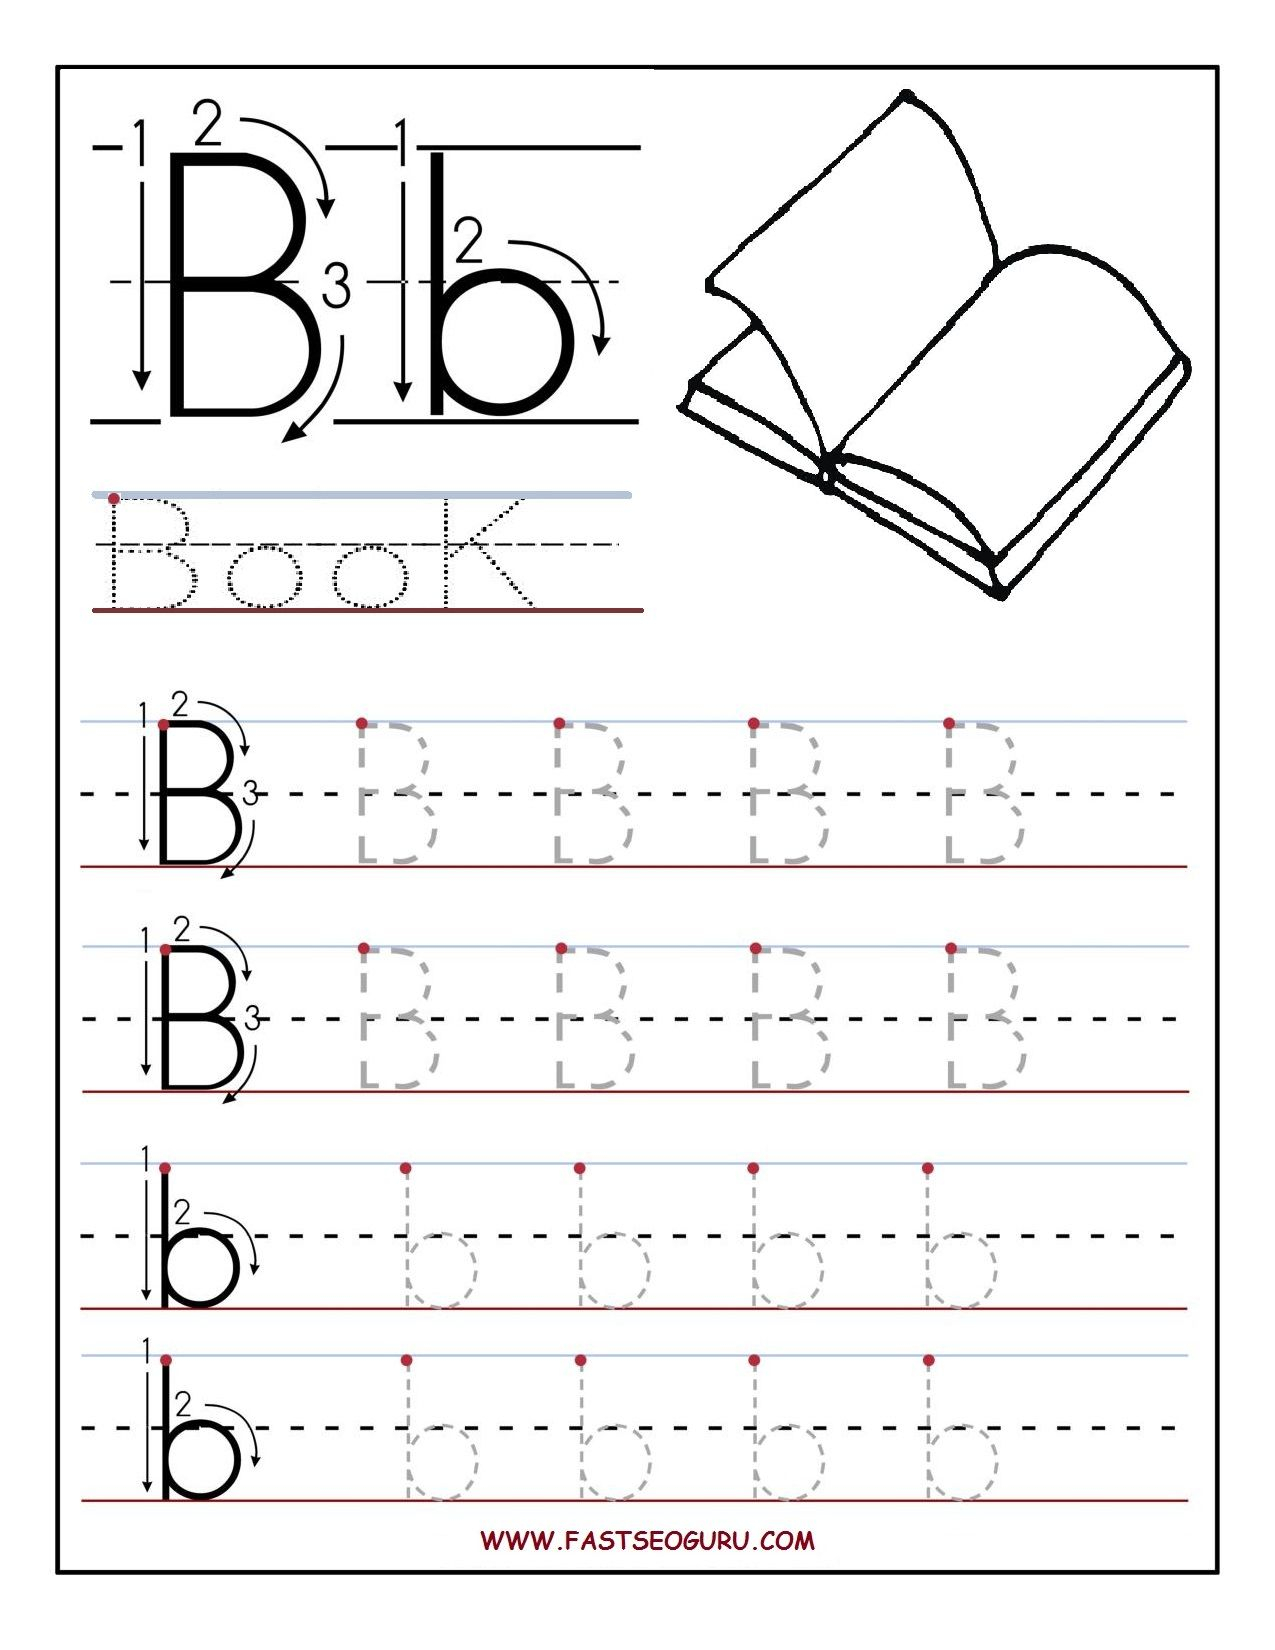 Printable Letter B Tracing Worksheets For Preschool | Letter within Letter B Worksheets Pre K